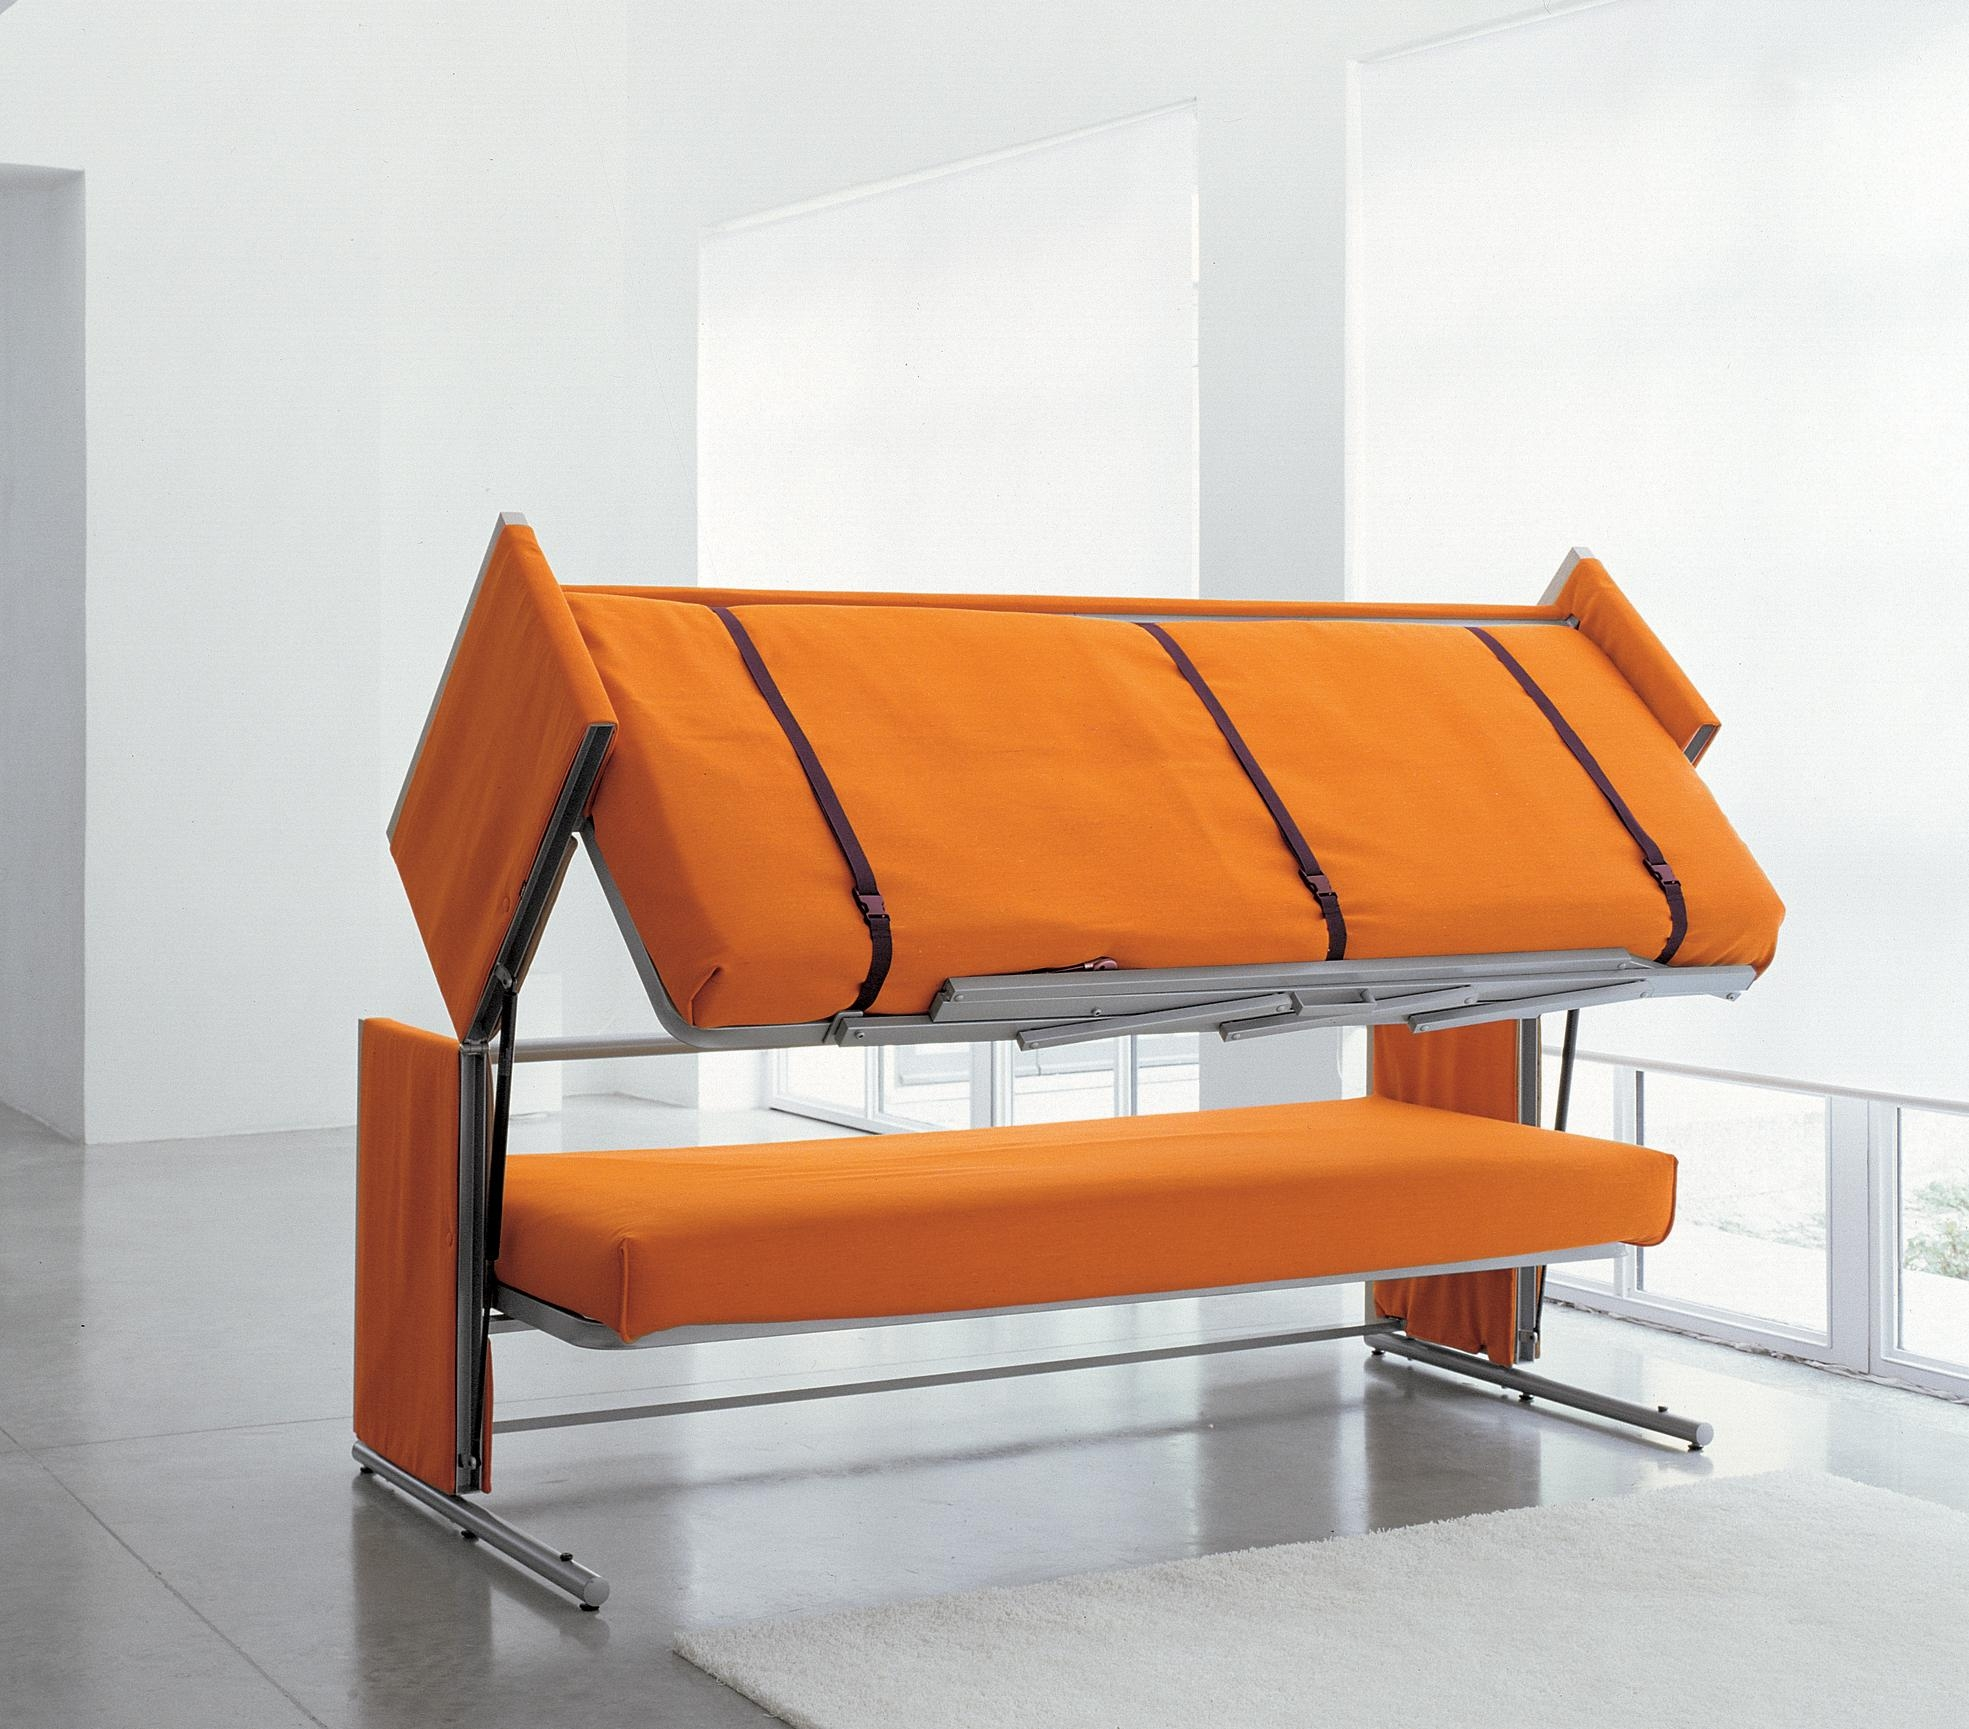 Doc A Sofa Bed That Converts In To A Bunk Bed In Two Secounds Inside Sofas Converts To Bunk Bed (Image 11 of 20)